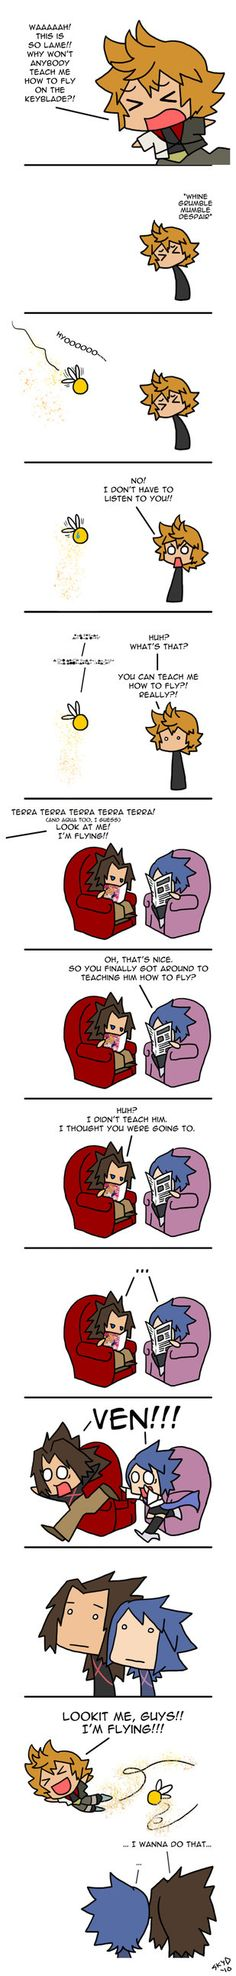 KHBBS - Flying Lesson Pt. III by KimYoshiko on DeviantArt